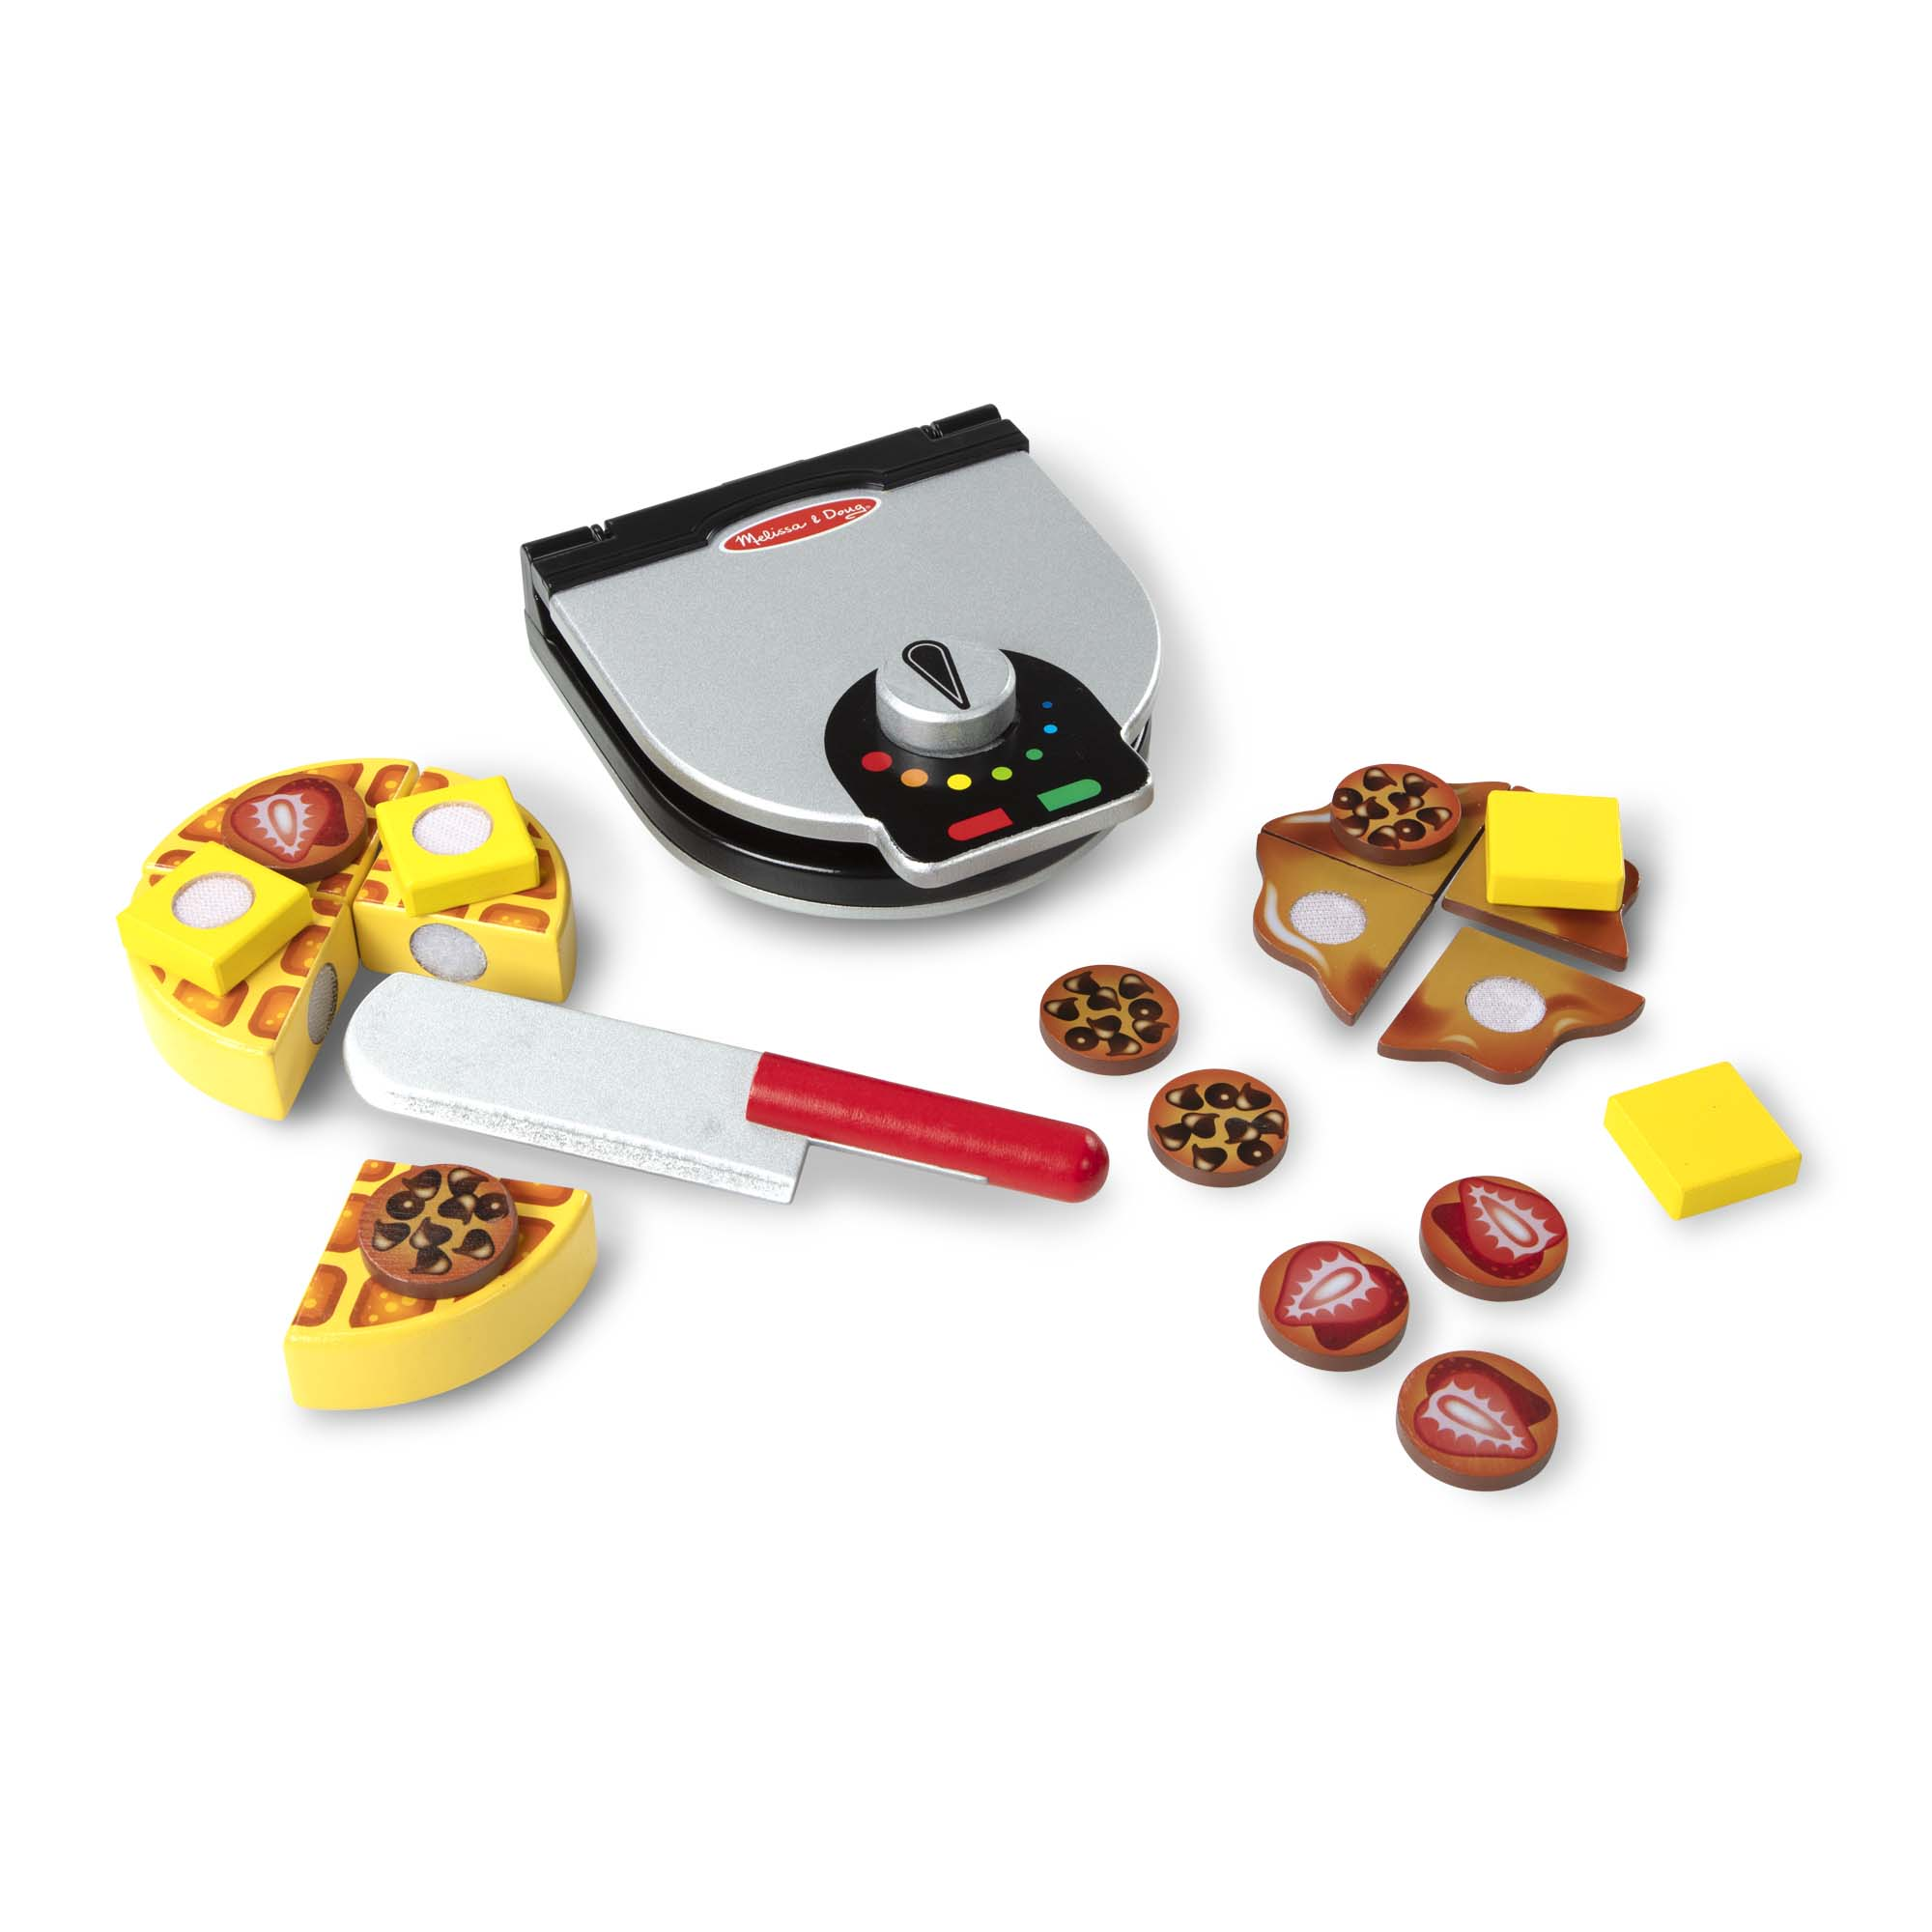 Melissa Doug Press And Serve Wooden Waffle Set 23 Pcs Play Food And Kitchen Accessories Walmart Com Walmart Com